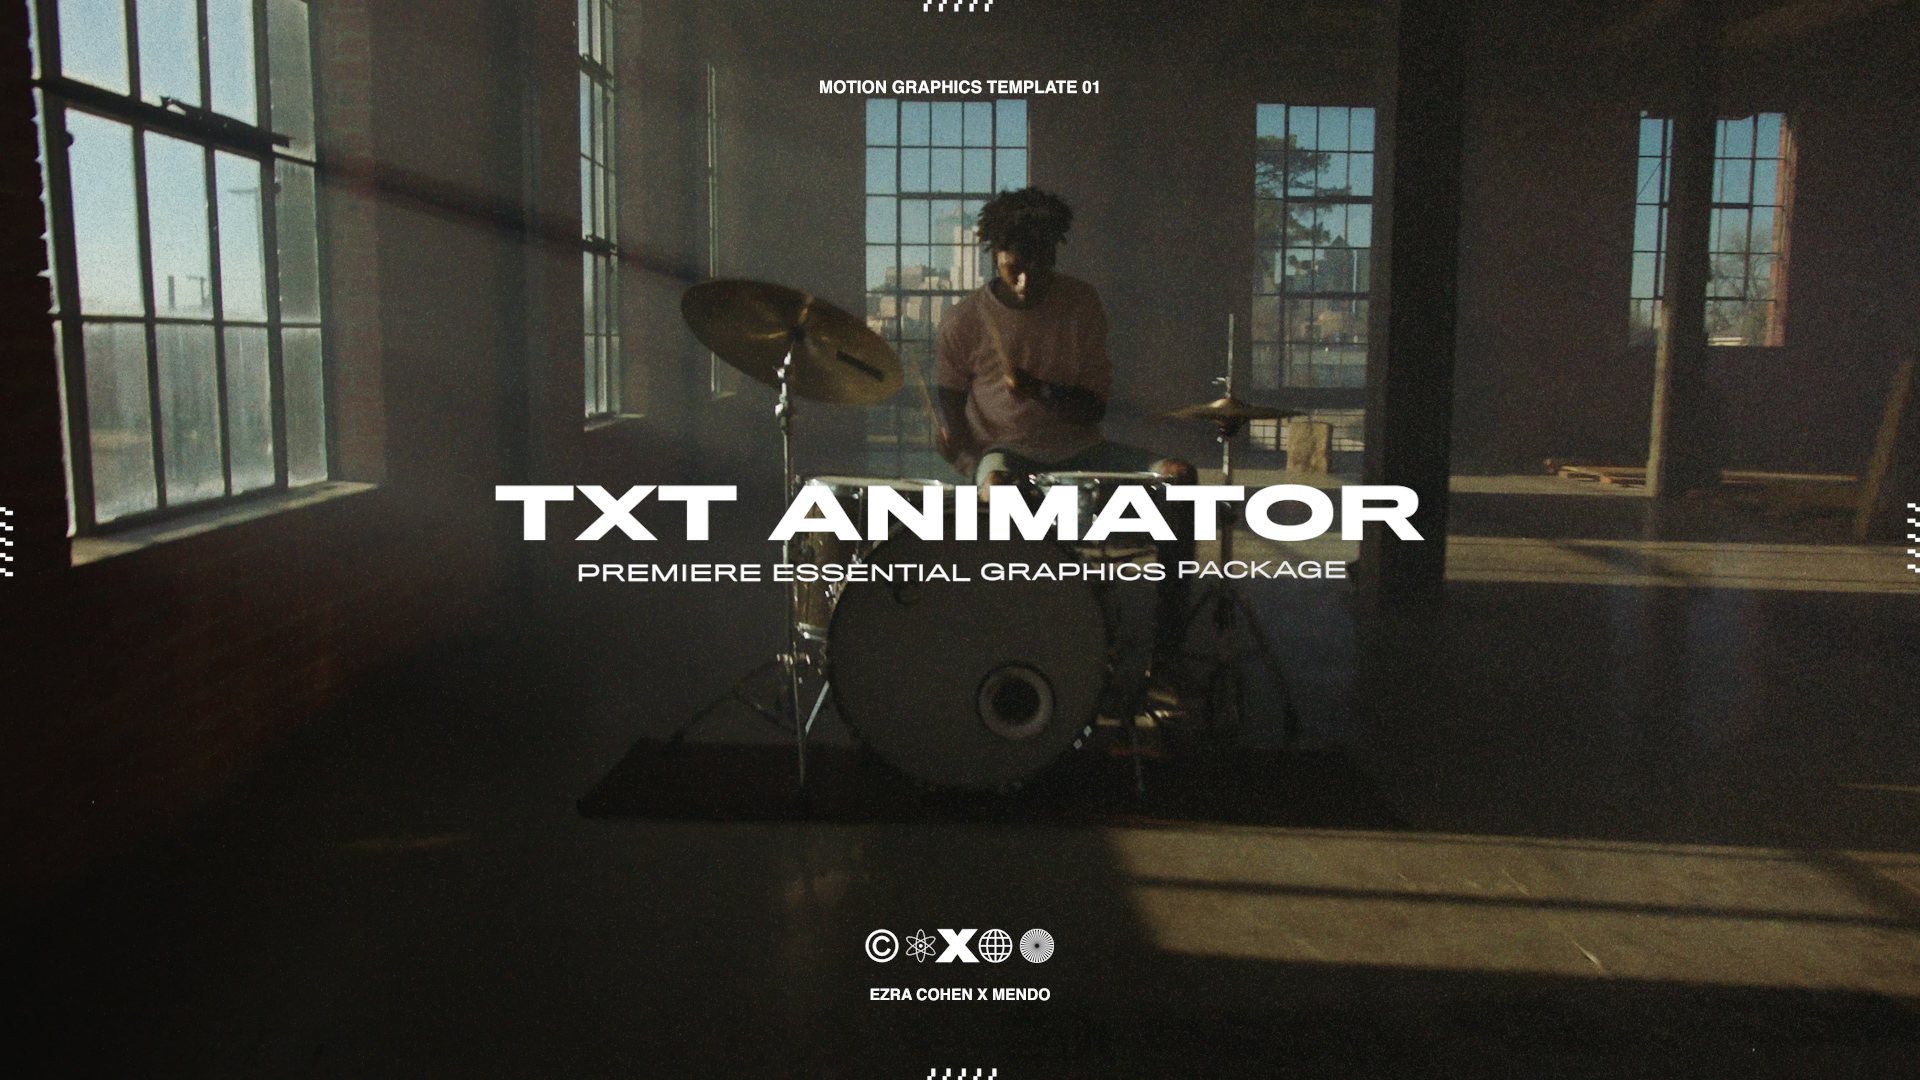 (NEW)  TXT Animator | $39  5 Text Animation presets you will ACTUALLY USE for Premiere Pro CC. Created in collaboration with the brilliant animator Mendo.